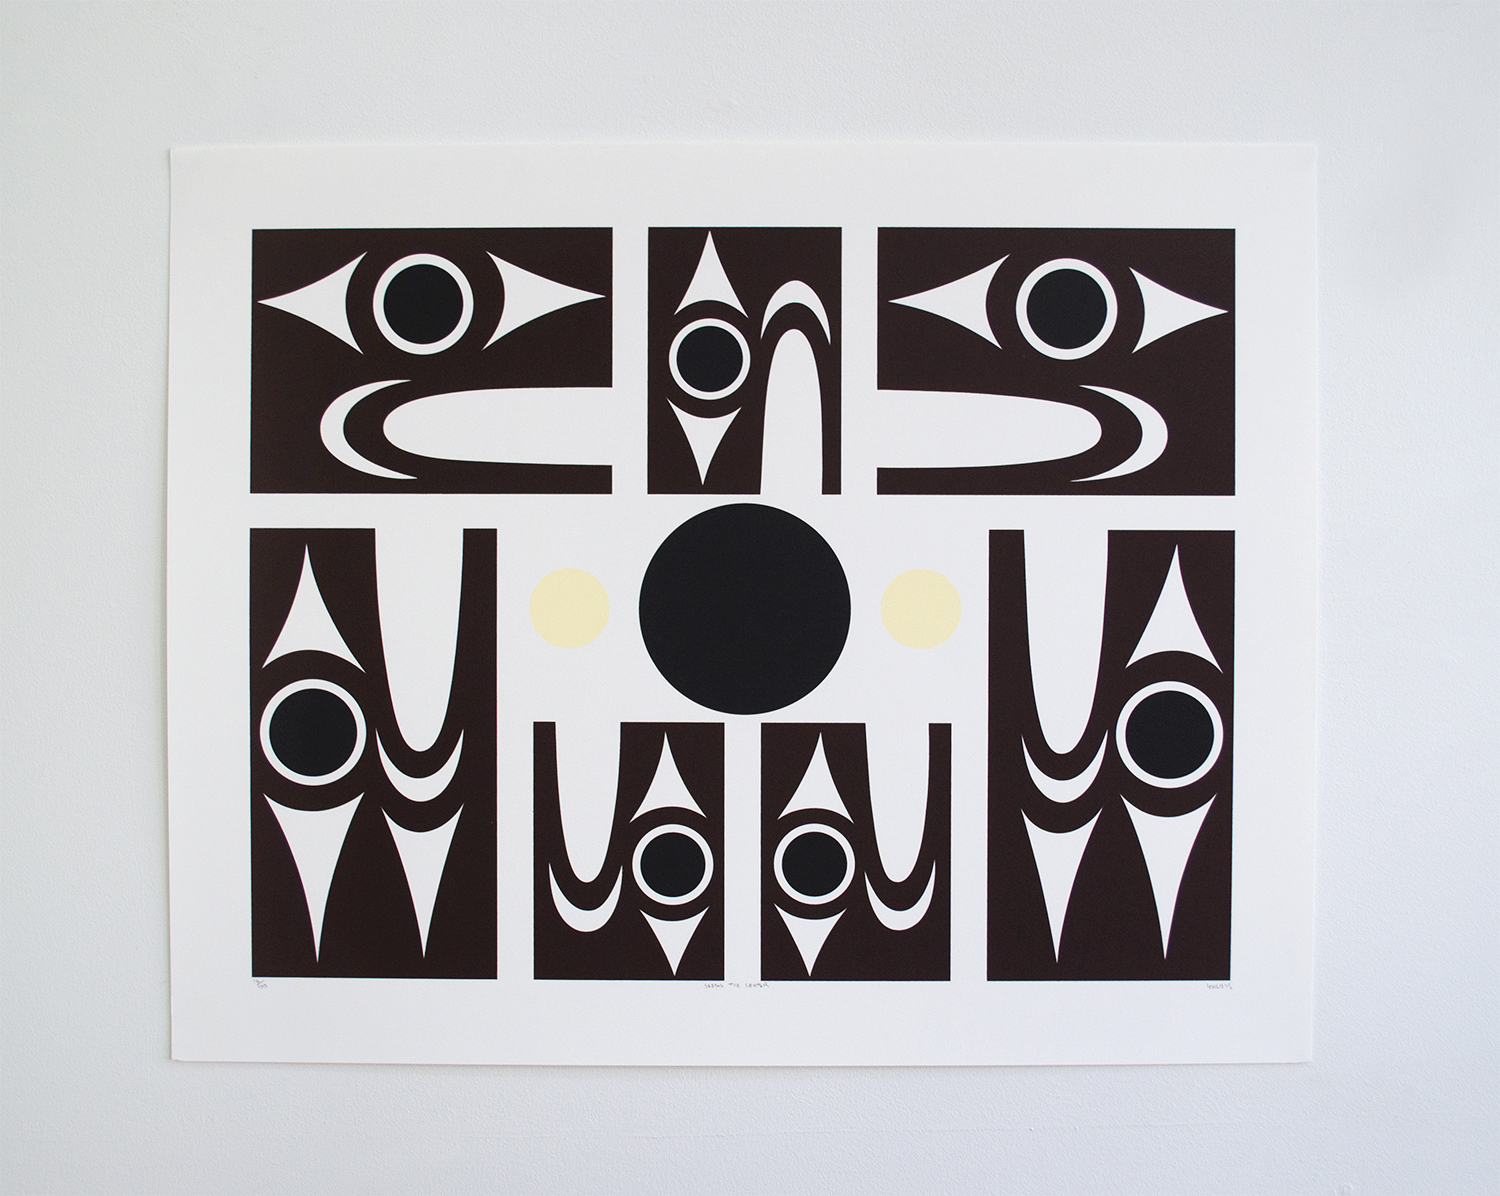 "Seeing The Center, 2015, lessLIE (Salish), Serigraph ed/100, 22"" x 27.5"", $300"